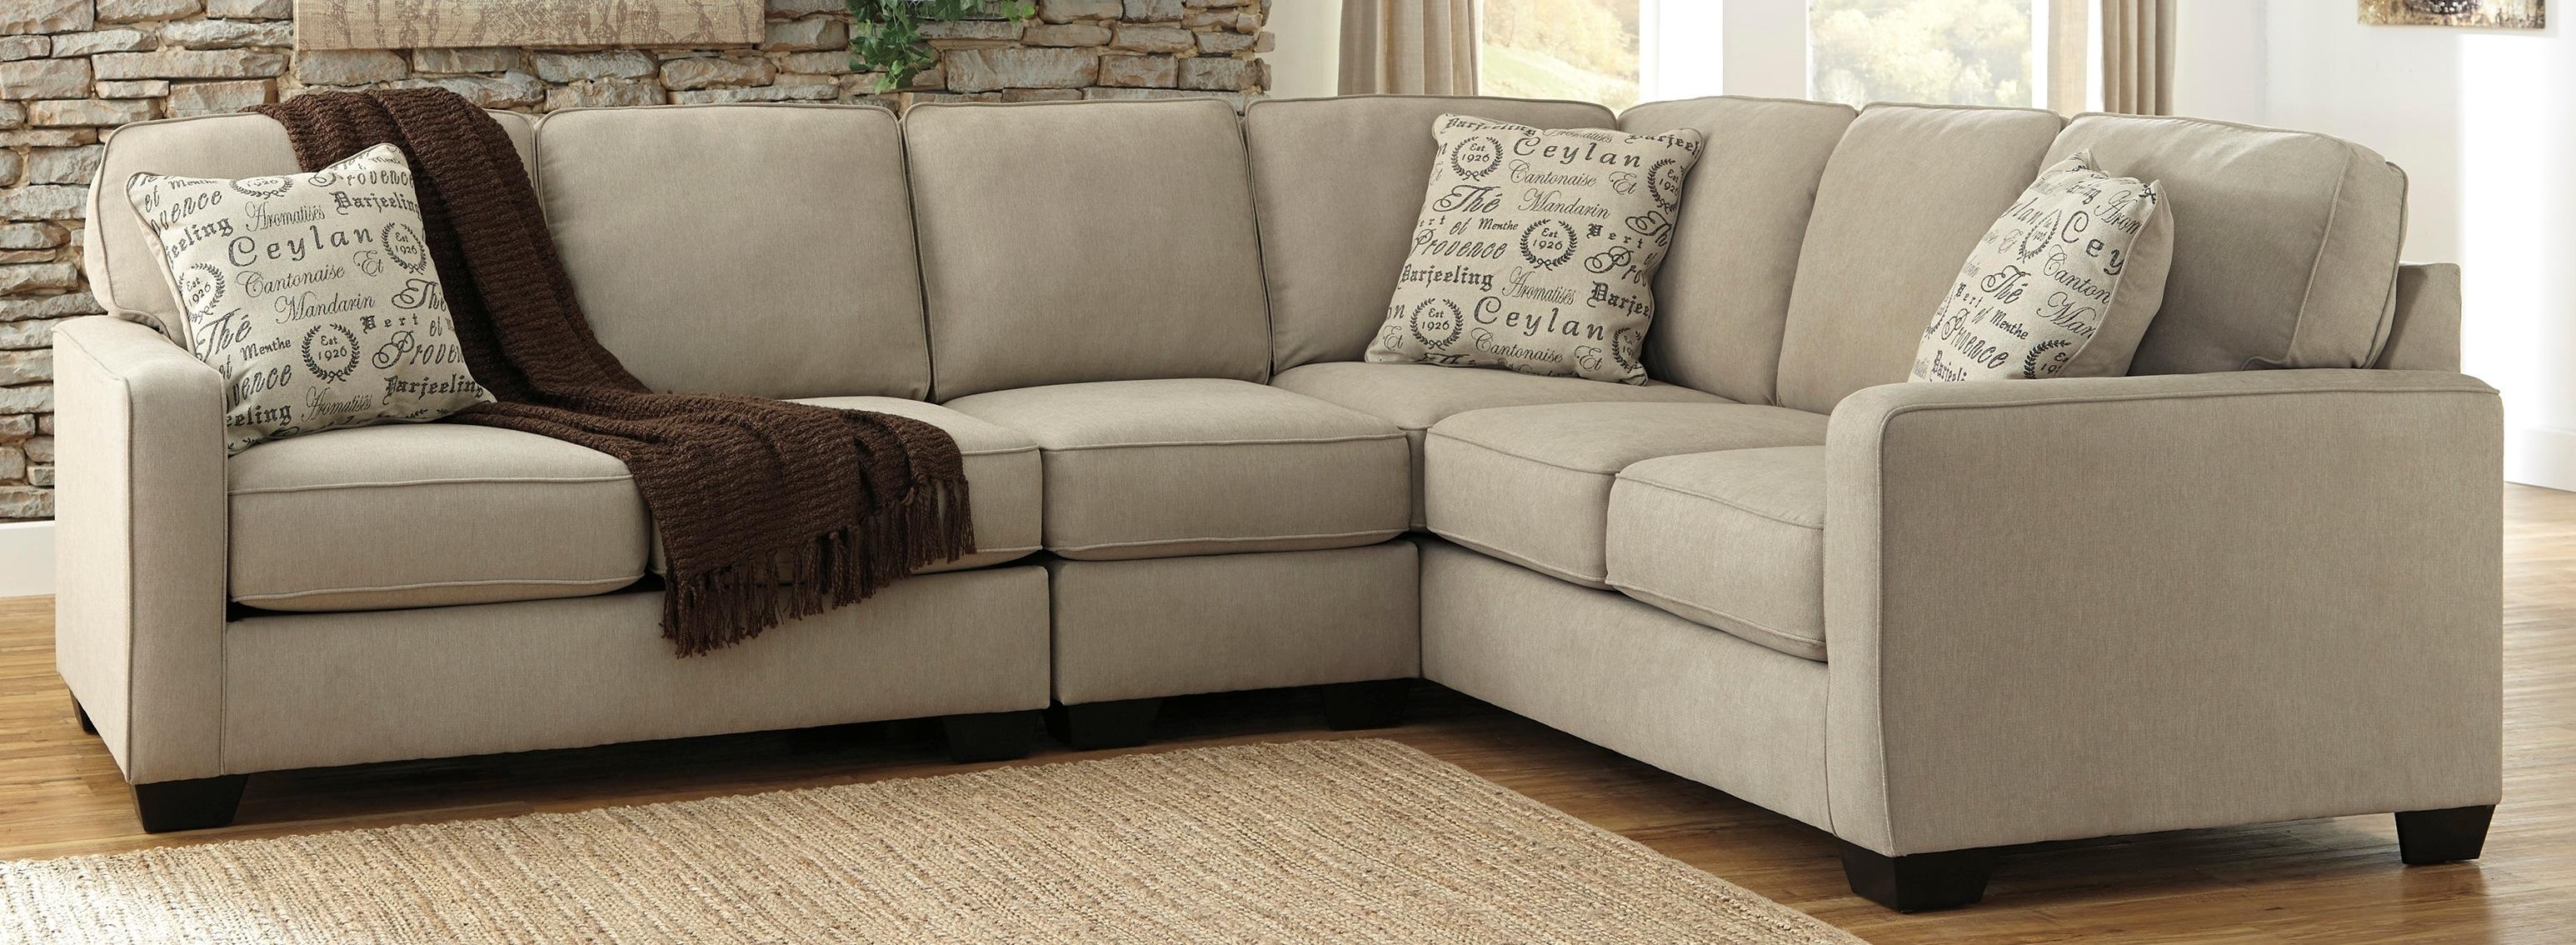 Living Room: Comfortable Ashley Furniture Sectionals For Lovely Pertaining To Ashley Corduroy Sectional Sofas (View 16 of 20)